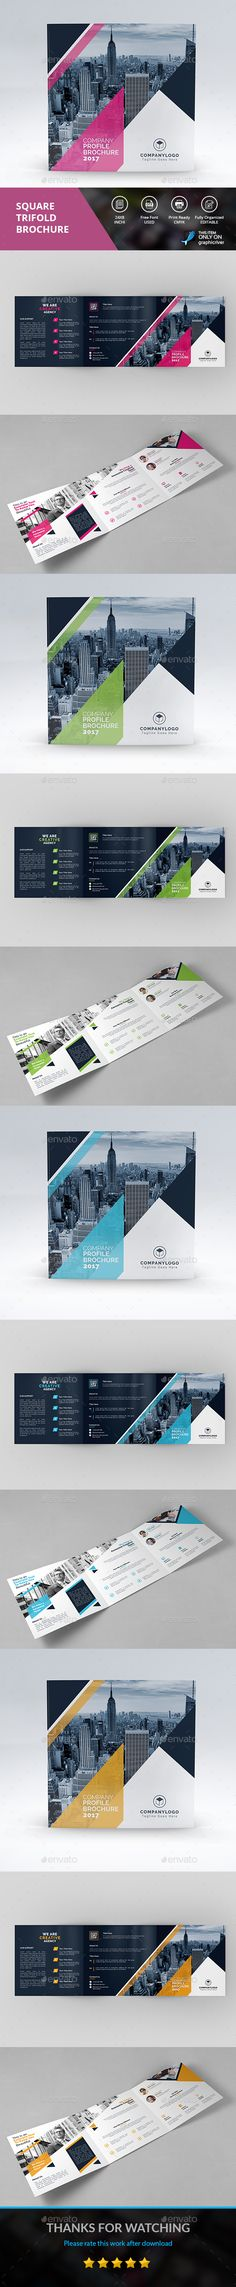 Corporate Business SQUARE TRI-FOLD Design Template - Corporate Brochures Design Template PSD. Download here: https://graphicriver.net/item/square-trifold/19446763?ref=yinkira